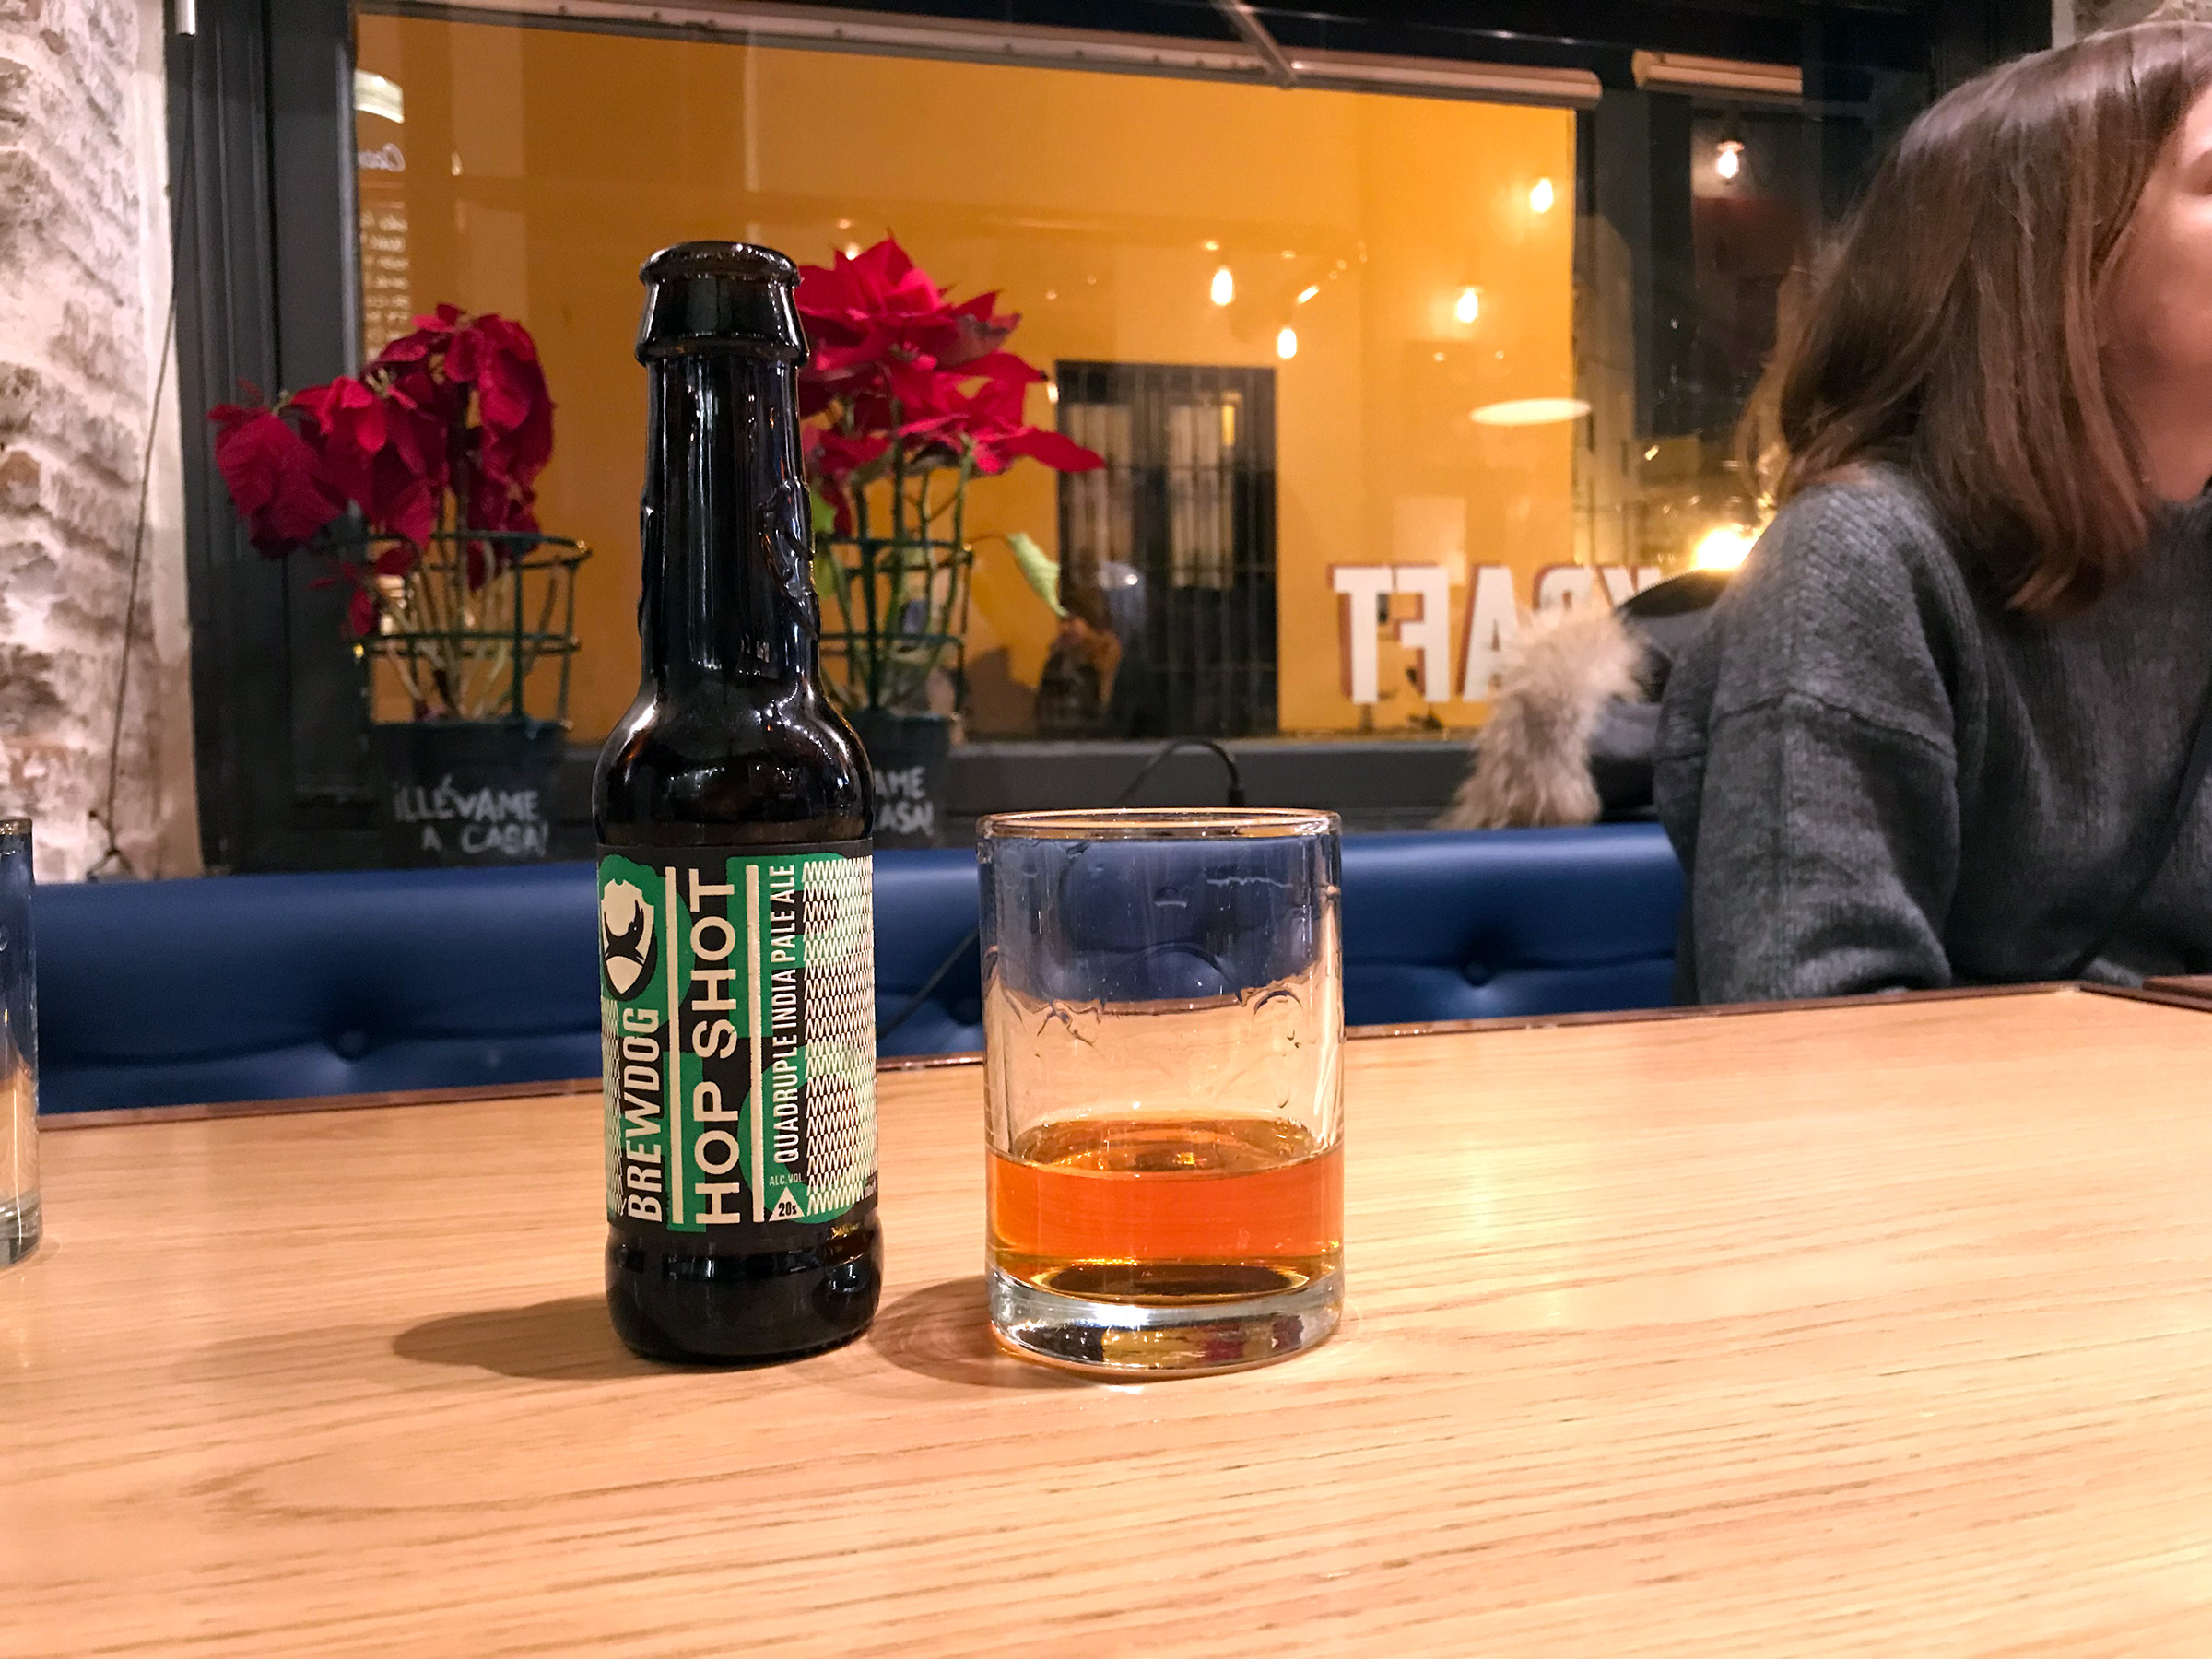 BrewDog Hop Shot by Jets Like Taxis / Hopsmash